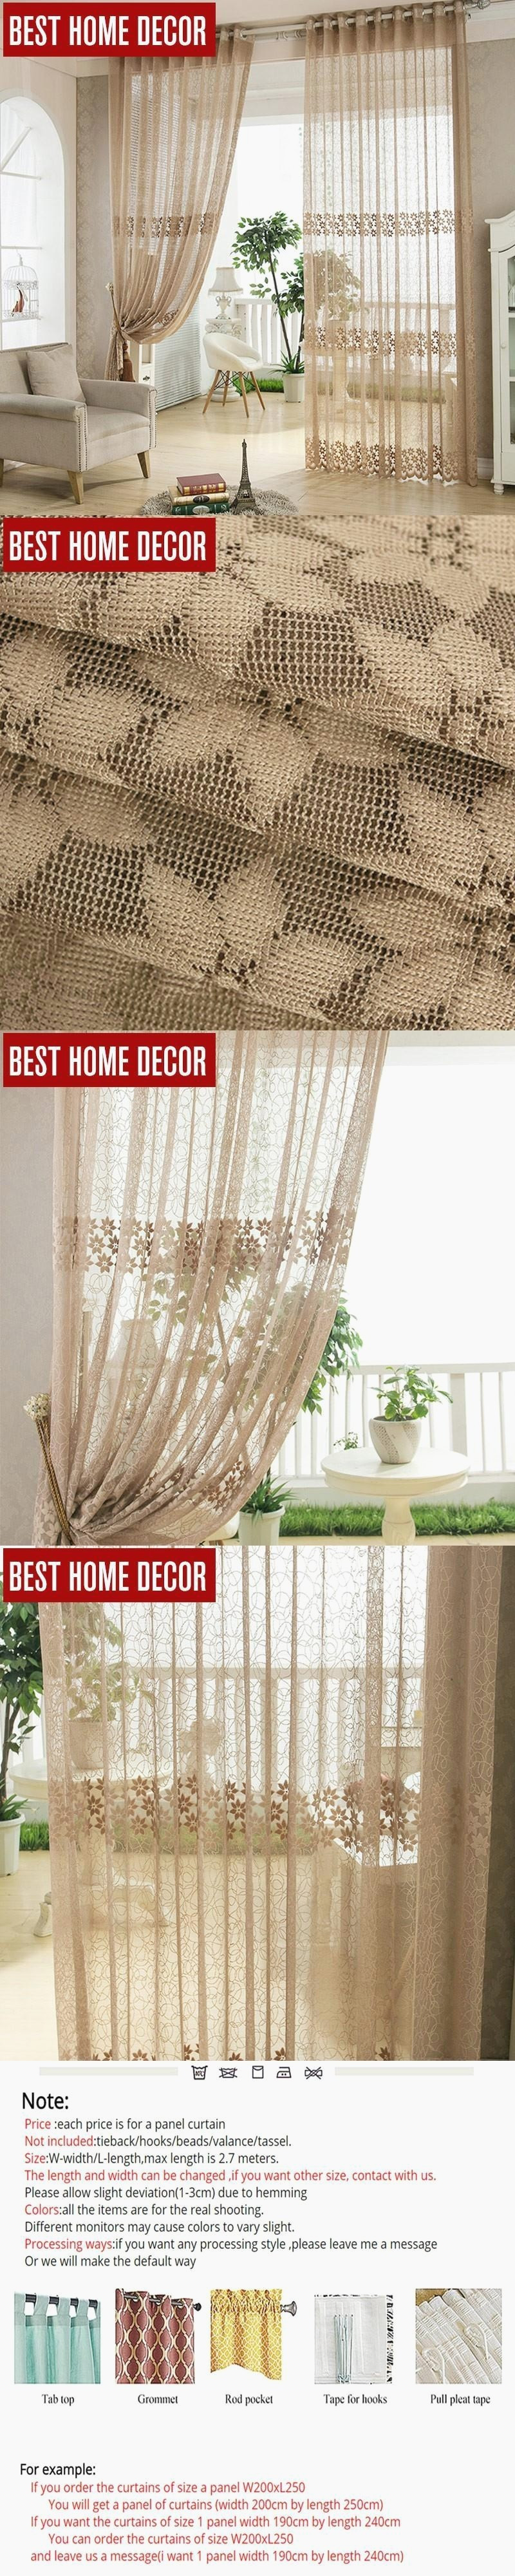 Walmart Clear Glass Vases Of Walmart Wedding Reception Decorations Fresh Walmart Wedding Pertaining to 23 Walmart Wedding Reception Decorations Walmart Wedding Reception Decorations Lovely 21 Amazing Curtain Panels Walmart